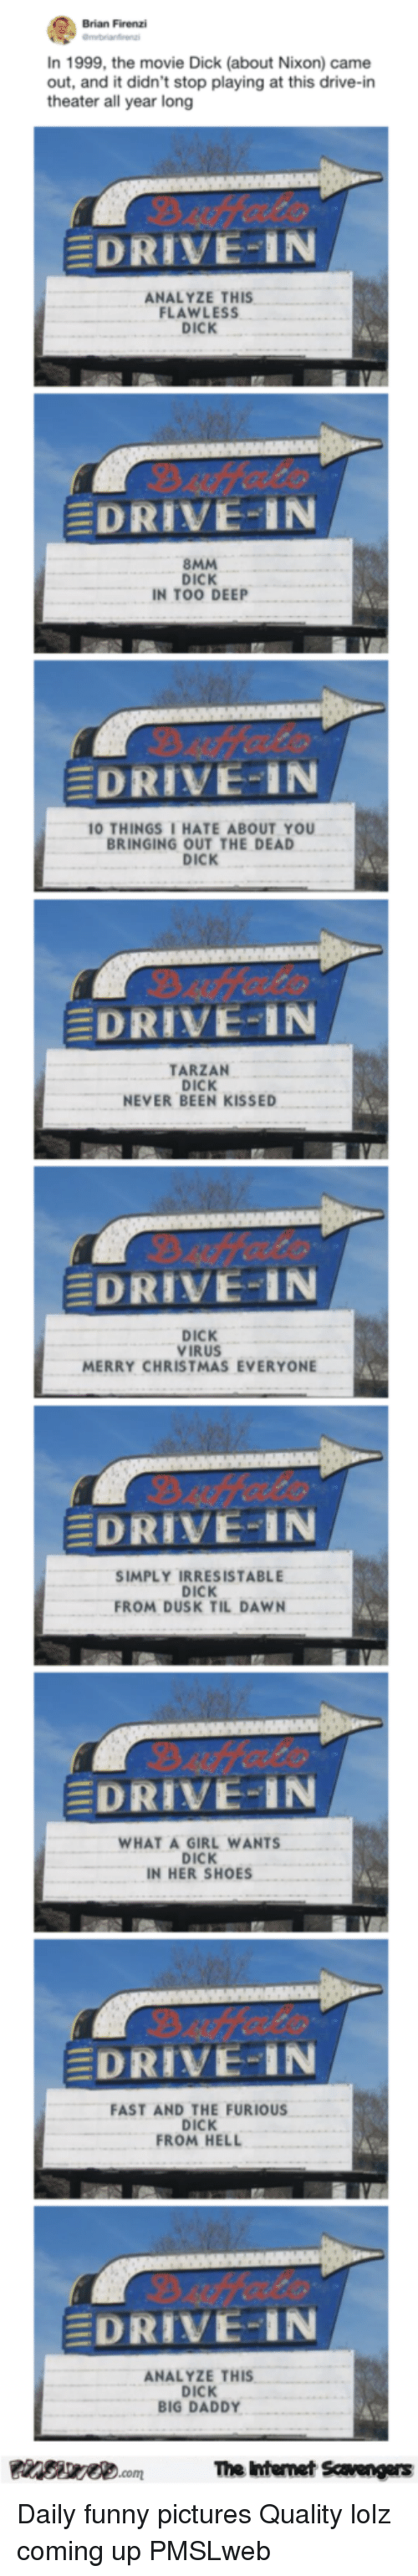 Christmas, Funny, and Shoes: Brian Firenzi  In 1999, the movie Dick (about Nixon) came  out, and it didn't stop playing at this drive-in  theater all year long  DRIVE-IN  ANALYZE THIS  FLAWLESS  DICK  EDRIVE-IN  8MM  DICK  IN TOO DEEP  EDRIVE-IN  0 THINGSI HATE ABOUT YOU  BRINGING OUT THE DEAD  DICK  EDRIVE-IN  TARZAN  DICK  NEVER BEEN KISSED  EDRIVE-IN  DICK  VIRUS  MERRY CHRISTMAS EVERYONE  DRIVE-IN  SIMPLY IRRESISTABLE  DICK  FROM DUSK TIL DAWN  DRIVE-IN  WHAT A GIRL WANTS  DICK  IN HER SHOES  DRIVE-IN  FAST AND THE FURIOUS  DICK  ROM HELL  EDRIVE-IN  ANALYZE THIS  DICK  BIG DADDY  The Ihtenet Scavengers <p>Daily funny pictures  Quality lolz coming up  PMSLweb </p>